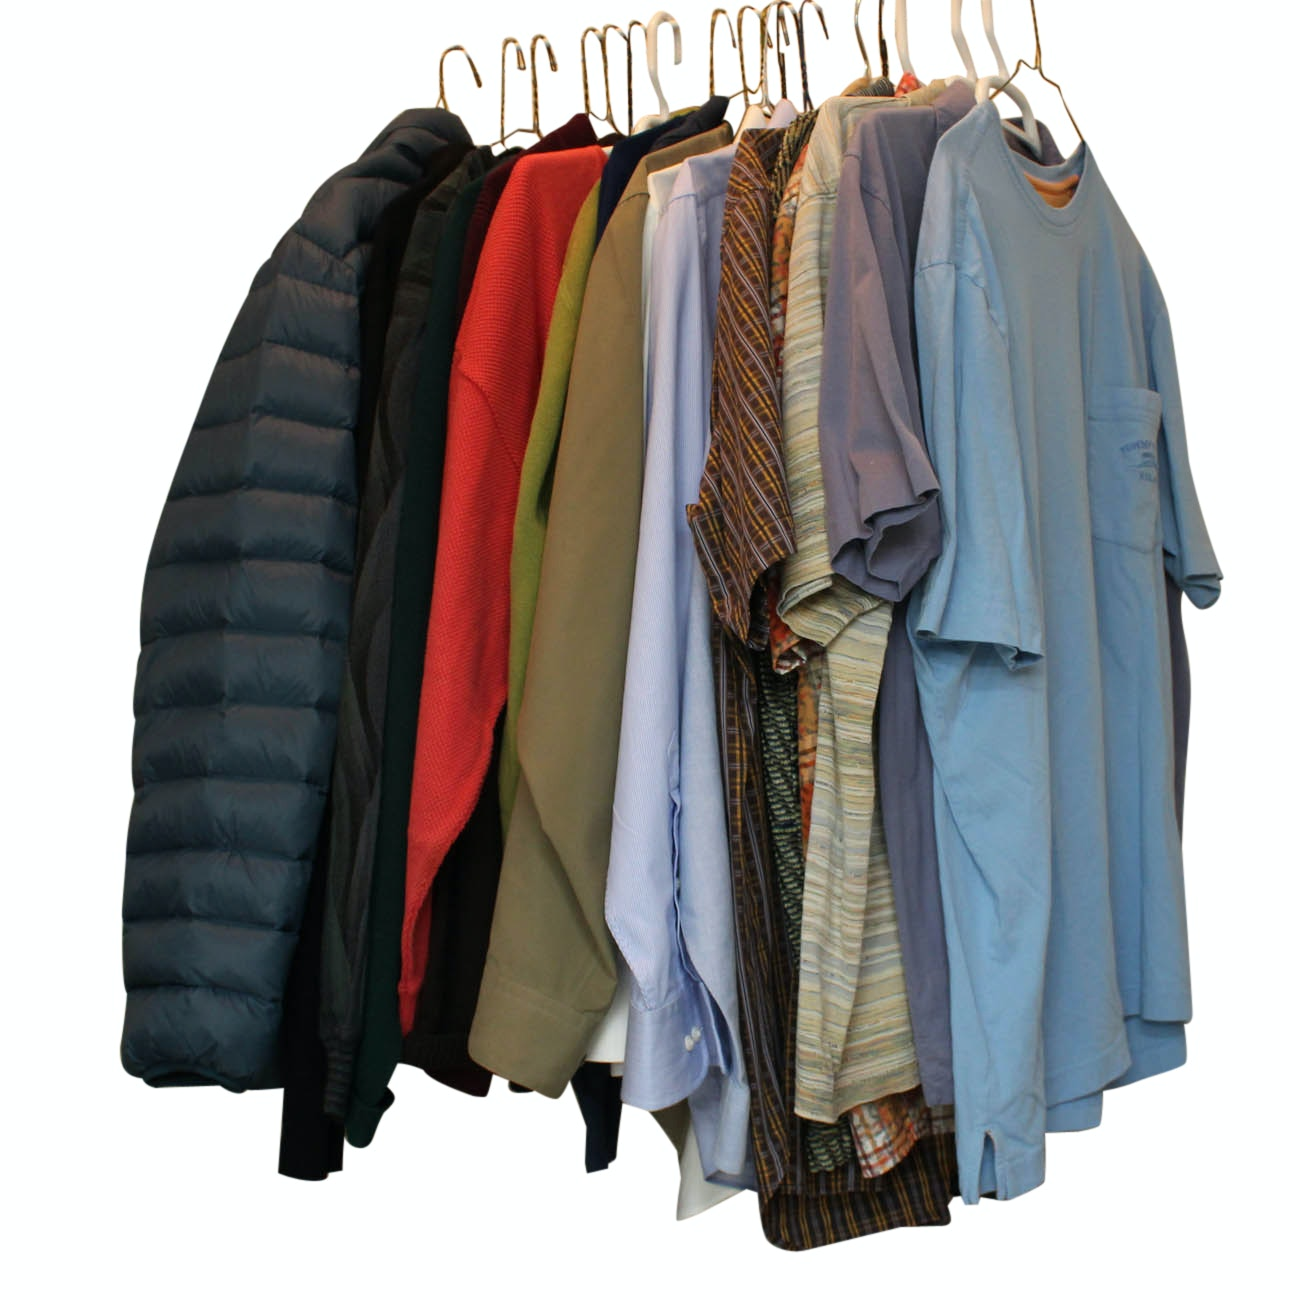 Men's Dress Shirts, Sweaters and Jacket Including Façonnable & Tommy Hilfiger